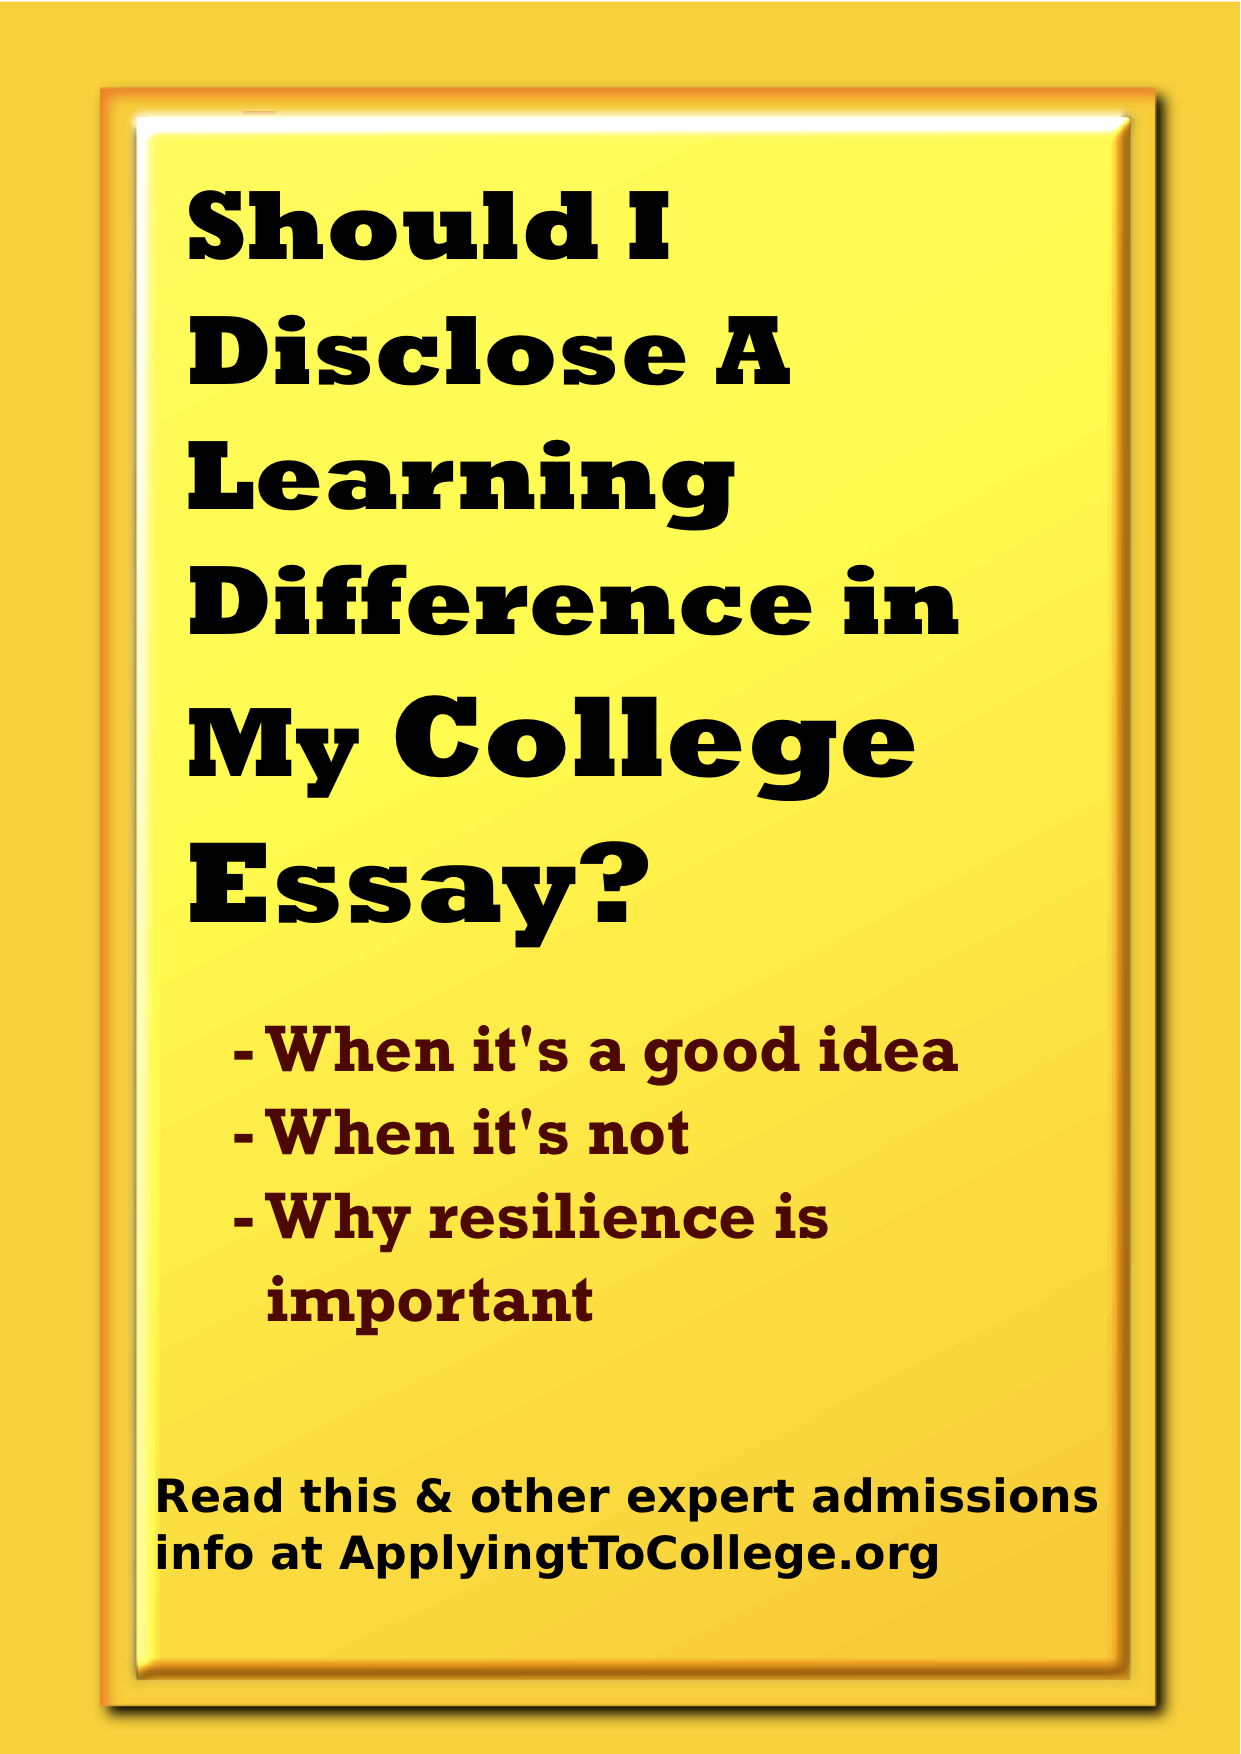 College essay application review service proofreading